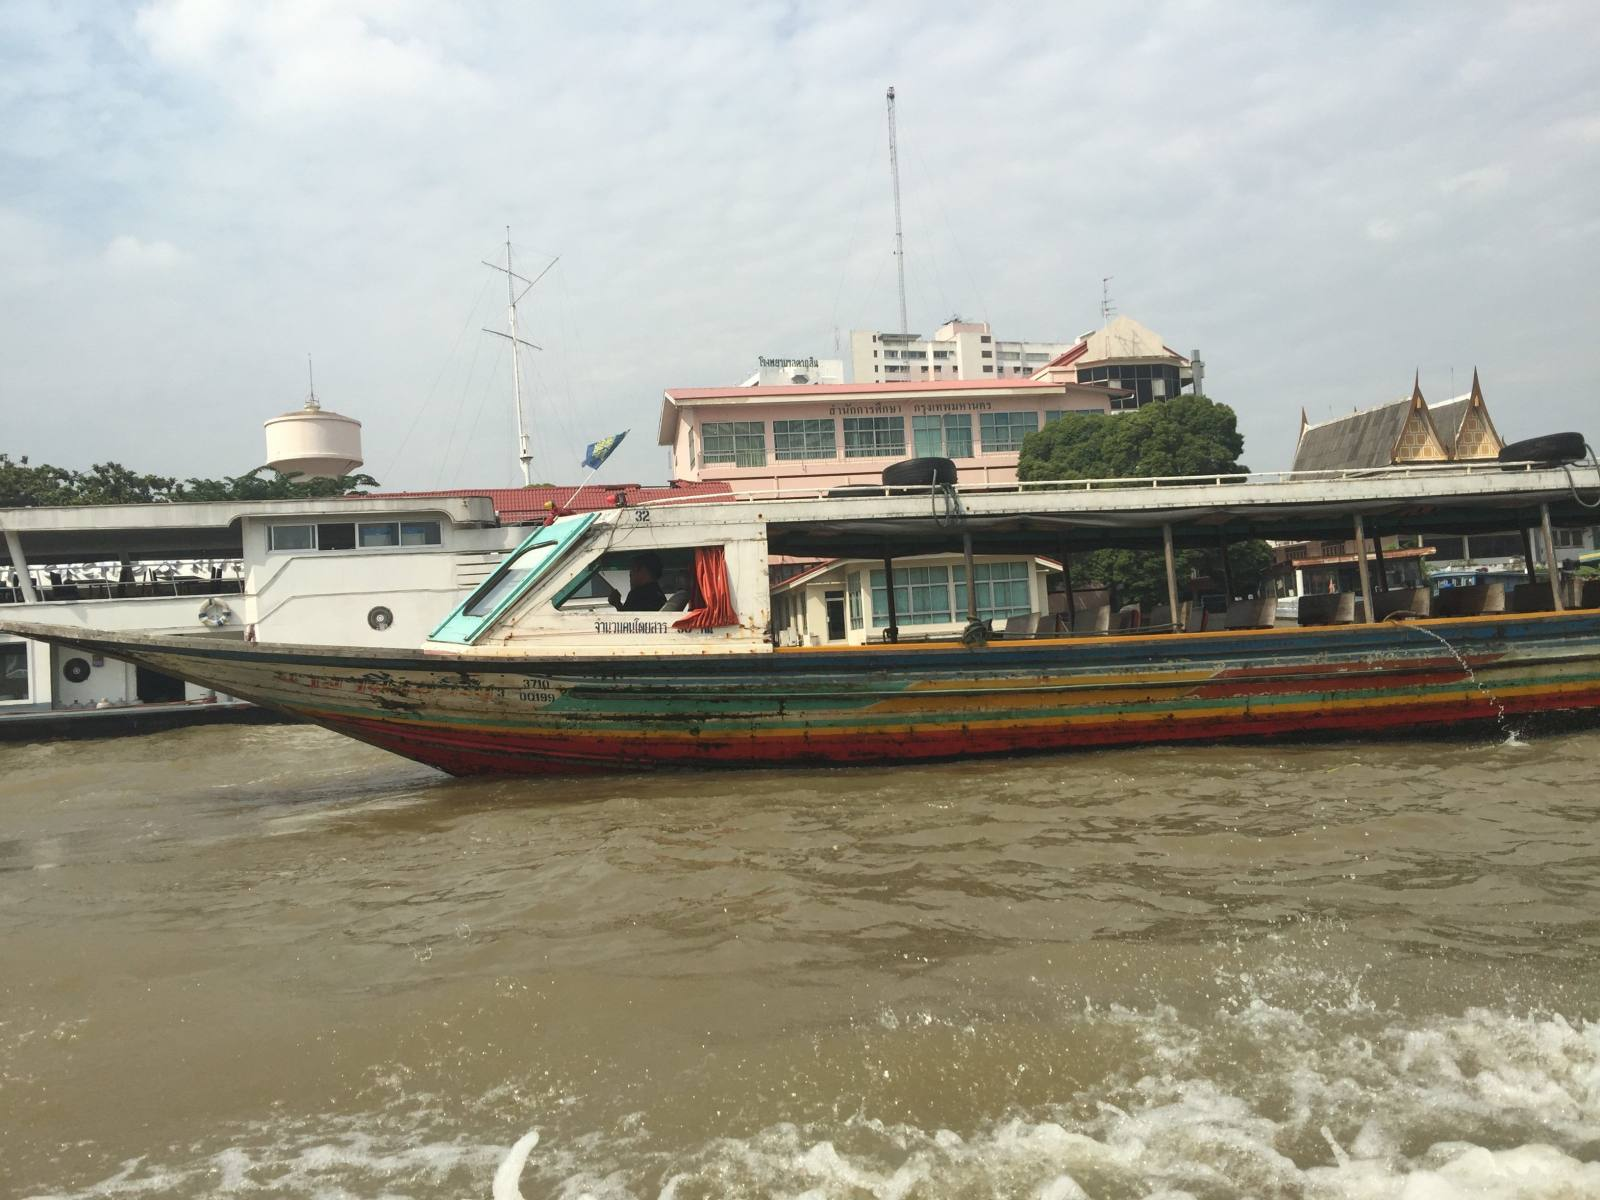 express boat in bangkok thailand is lots of fun for young children, and you see so many wonderful sights, like temples and other boats whizzing past